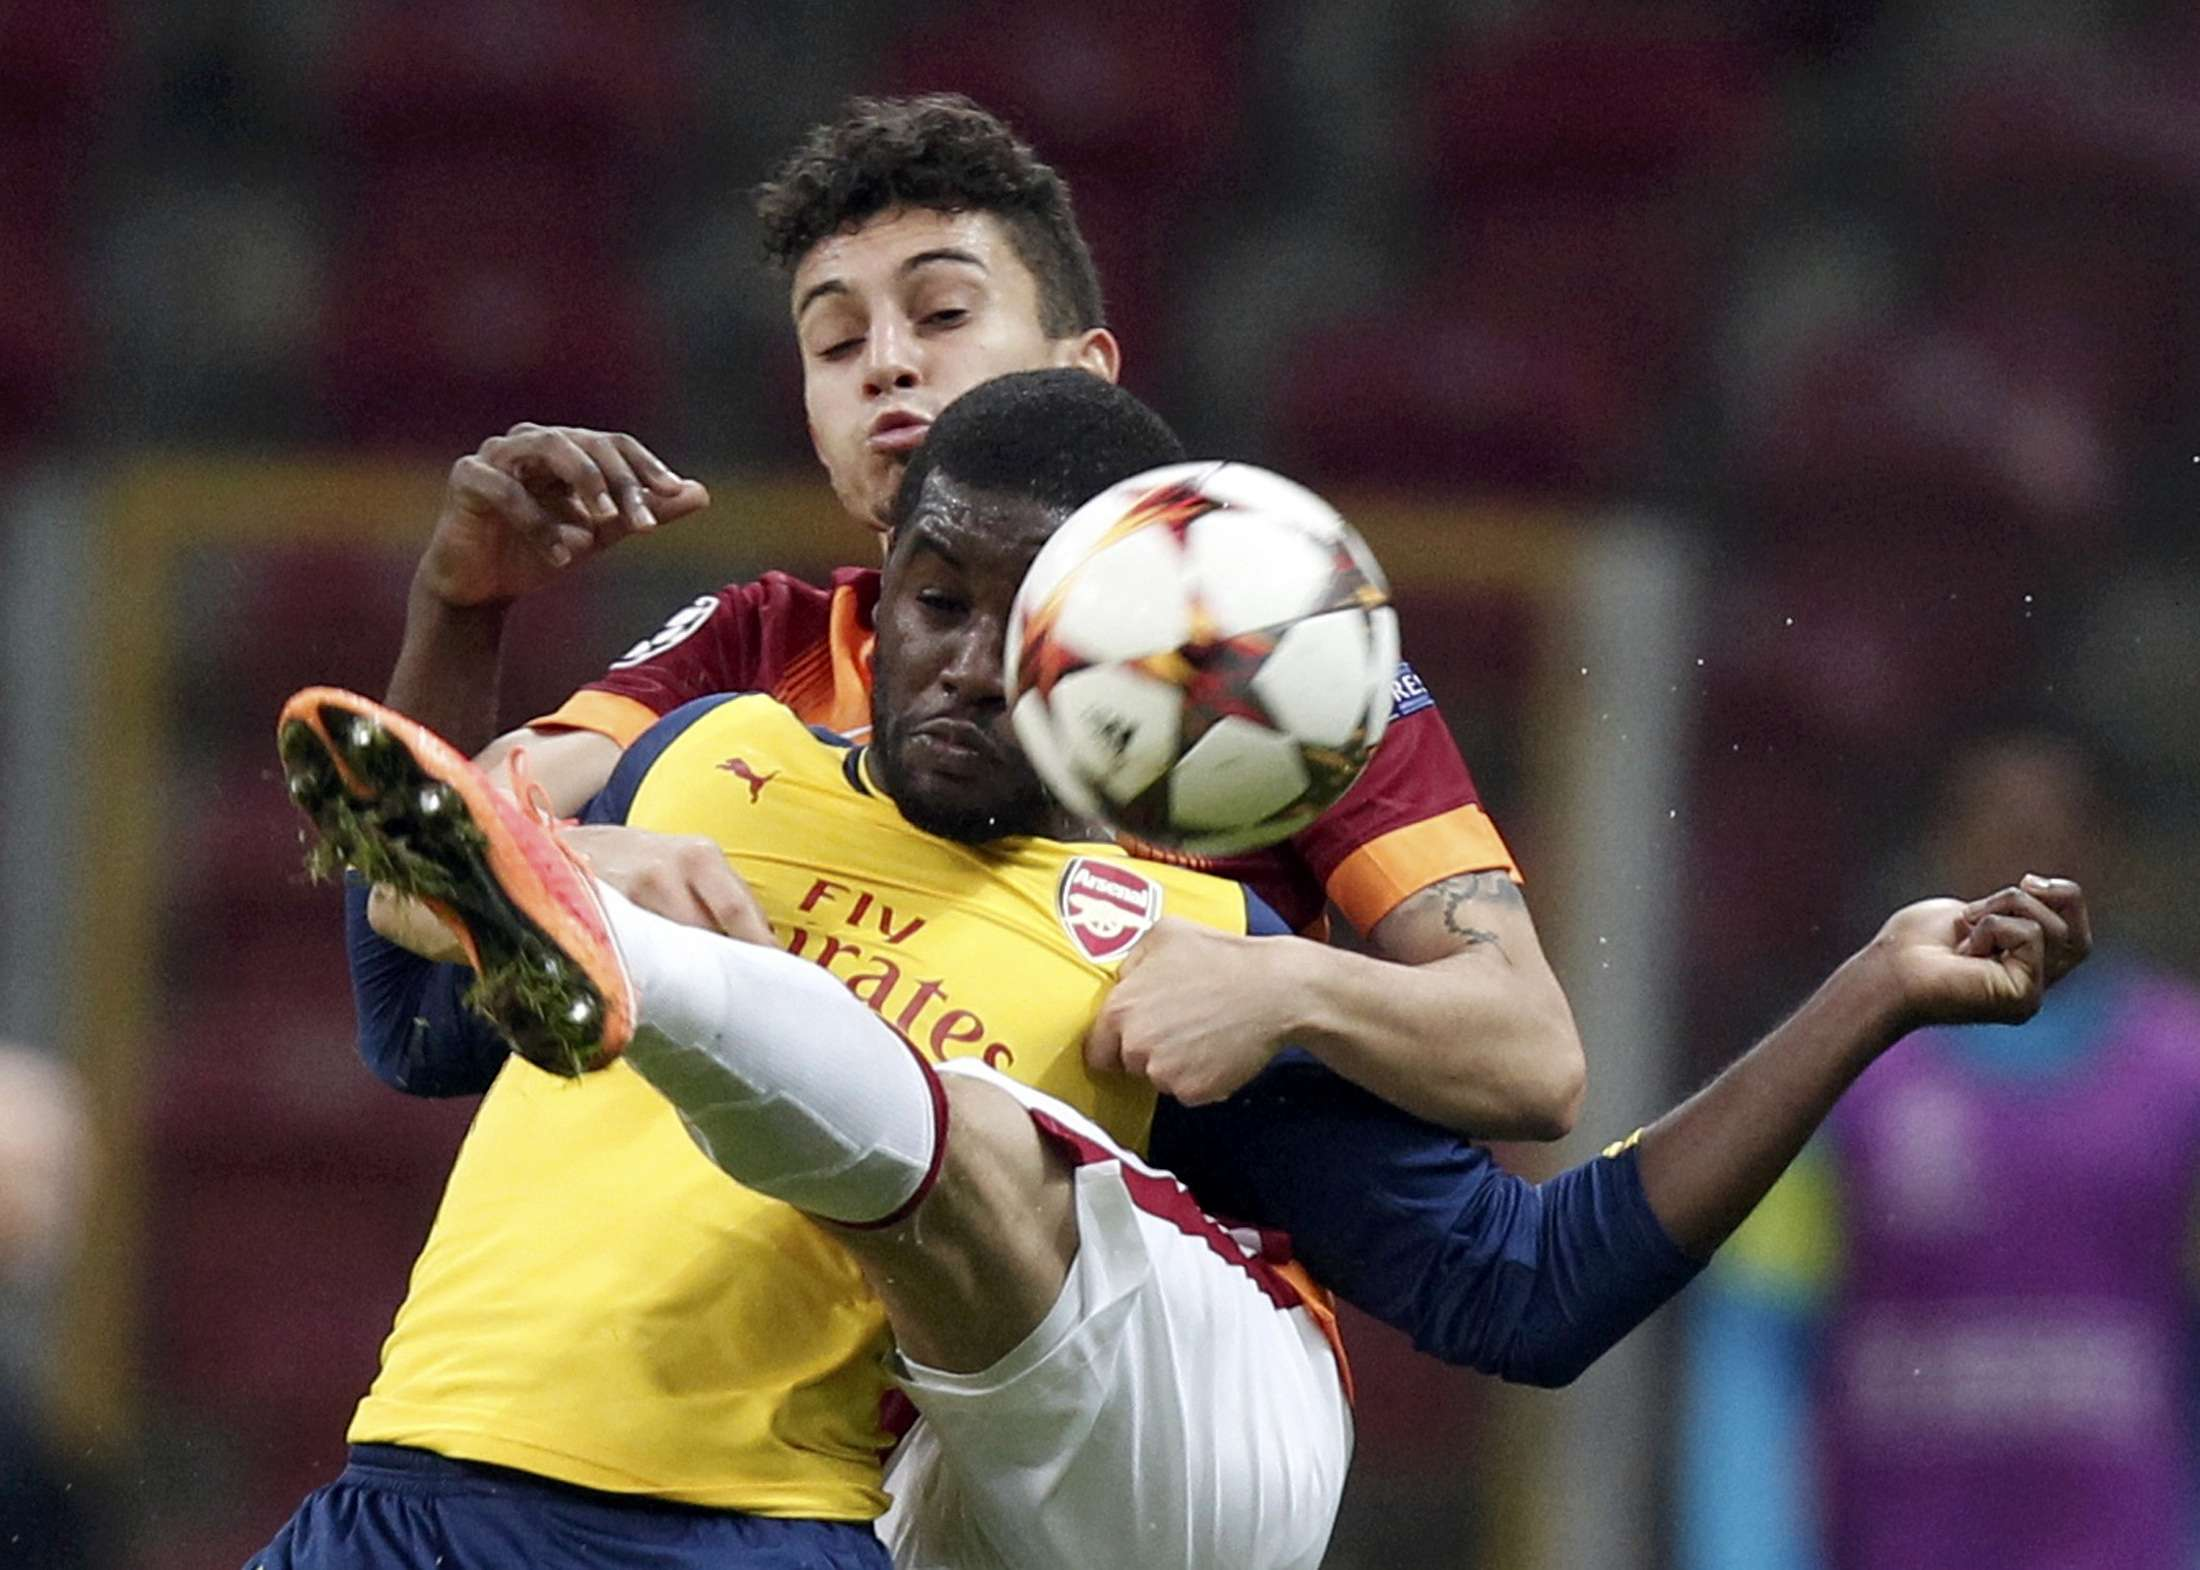 Galatasaray's Alex Telles challenges Arsenal's Joel Campbell (front) during their Champions League Group D soccer match at Ali Sami Yen Spor Kompleksi in Istanbul December 9, 2014. REUTERS/Osman Orsal (TURKEY - Tags: SOCCER SPORT TPX IMAGES OF THE DAY) Foto: OSMAN ORSAL/REUTERS